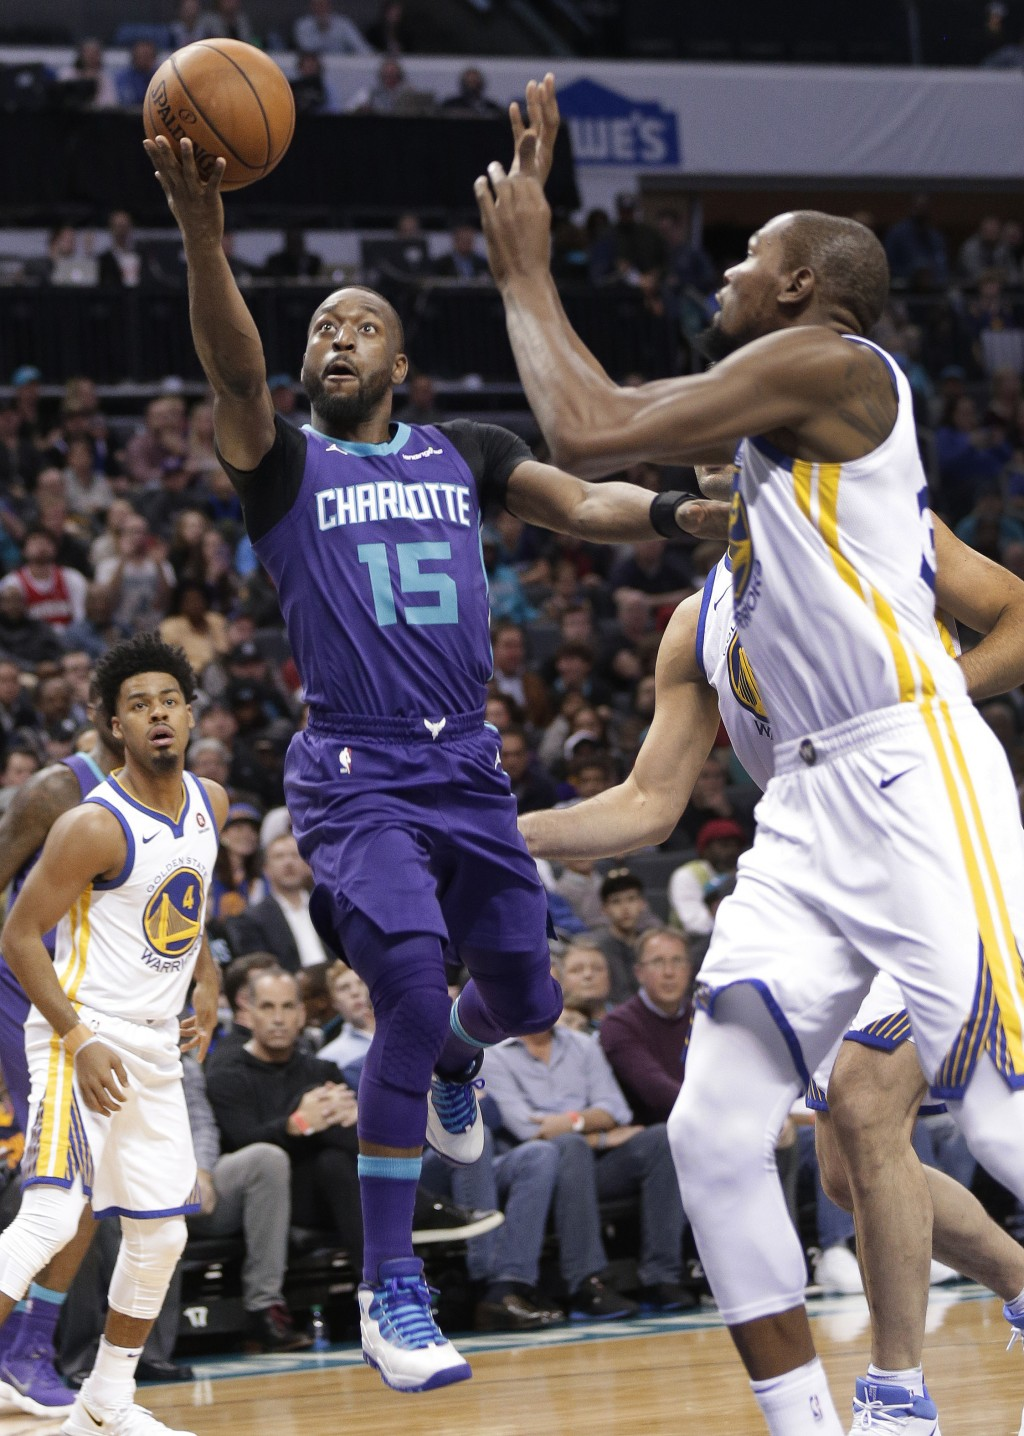 Charlotte Hornets' Kemba Walker (15) drives past Golden State Warriors' Kevin Durant (35) during the first half of an NBA basketball game in Charlotte